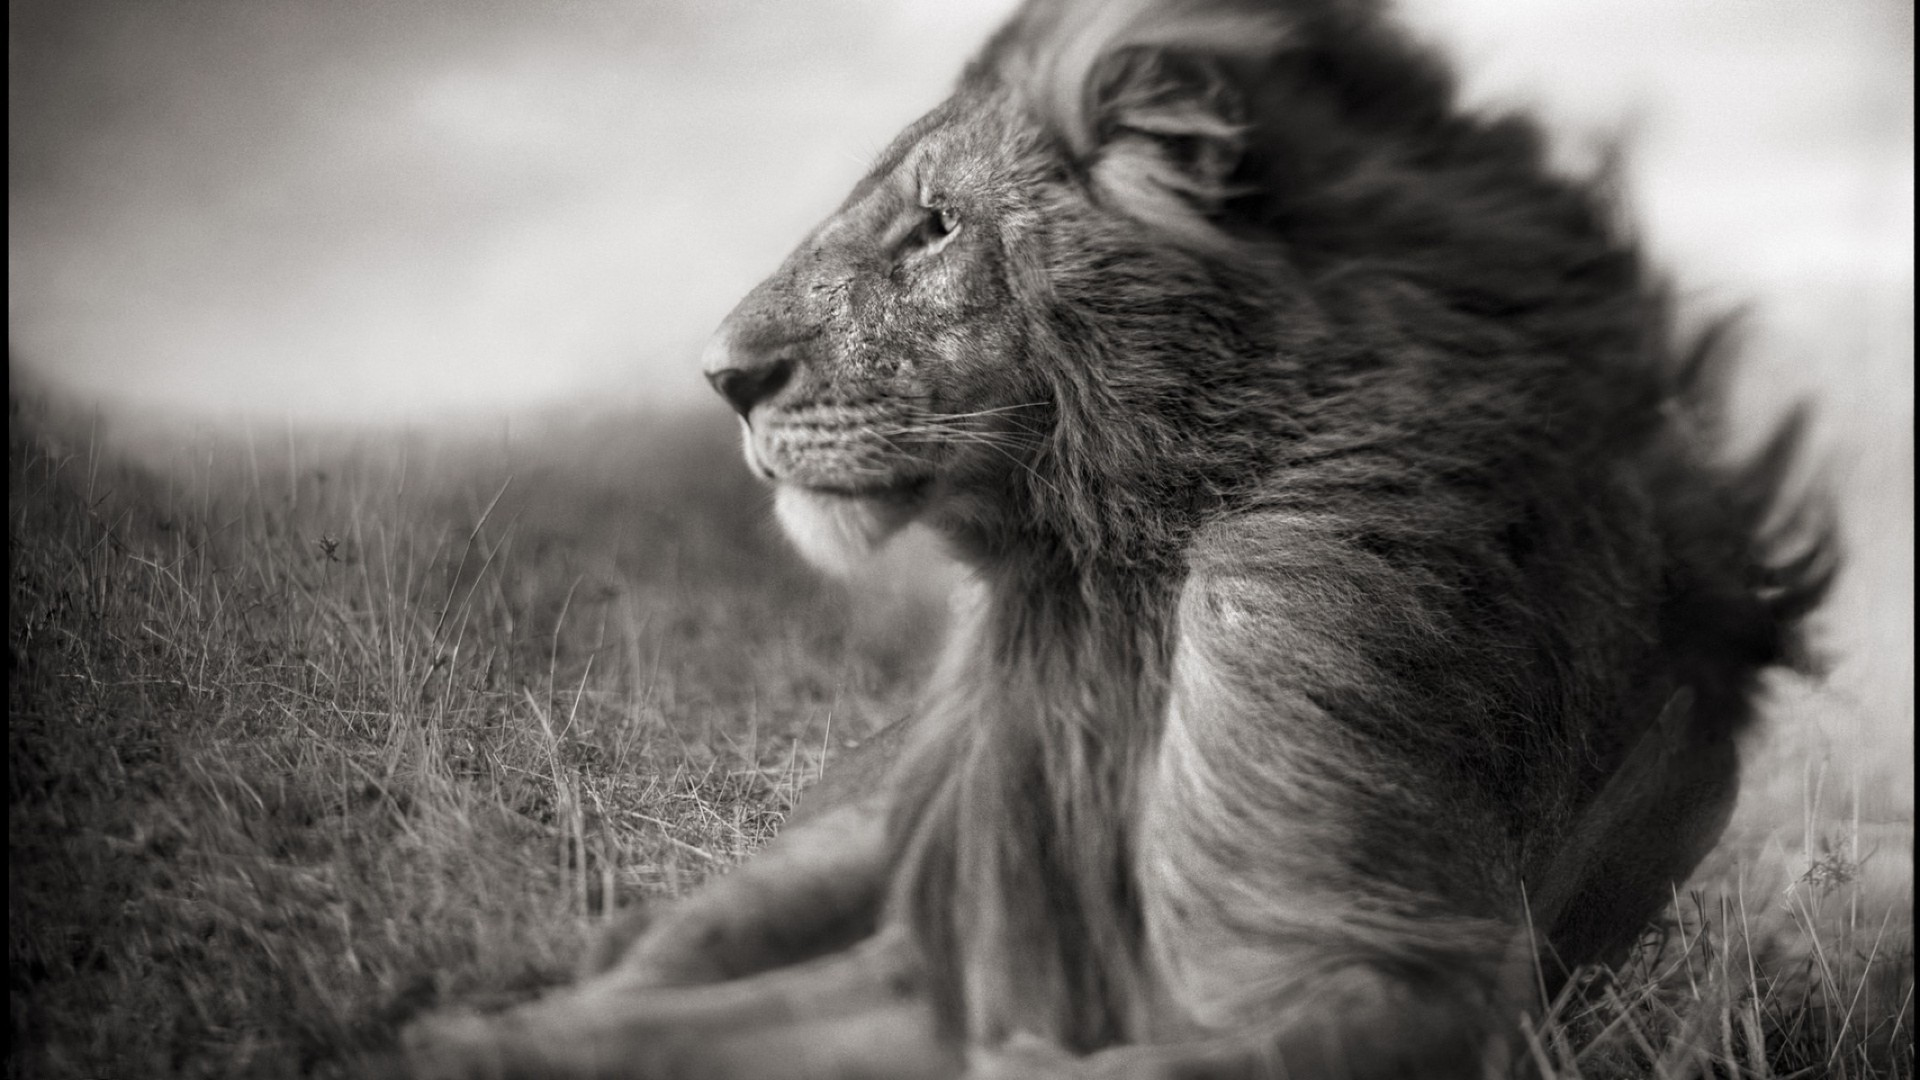 lions mammal monochrome portrait animal nature wildlife fur cat one cute outdoors grass hair dog wild zoo